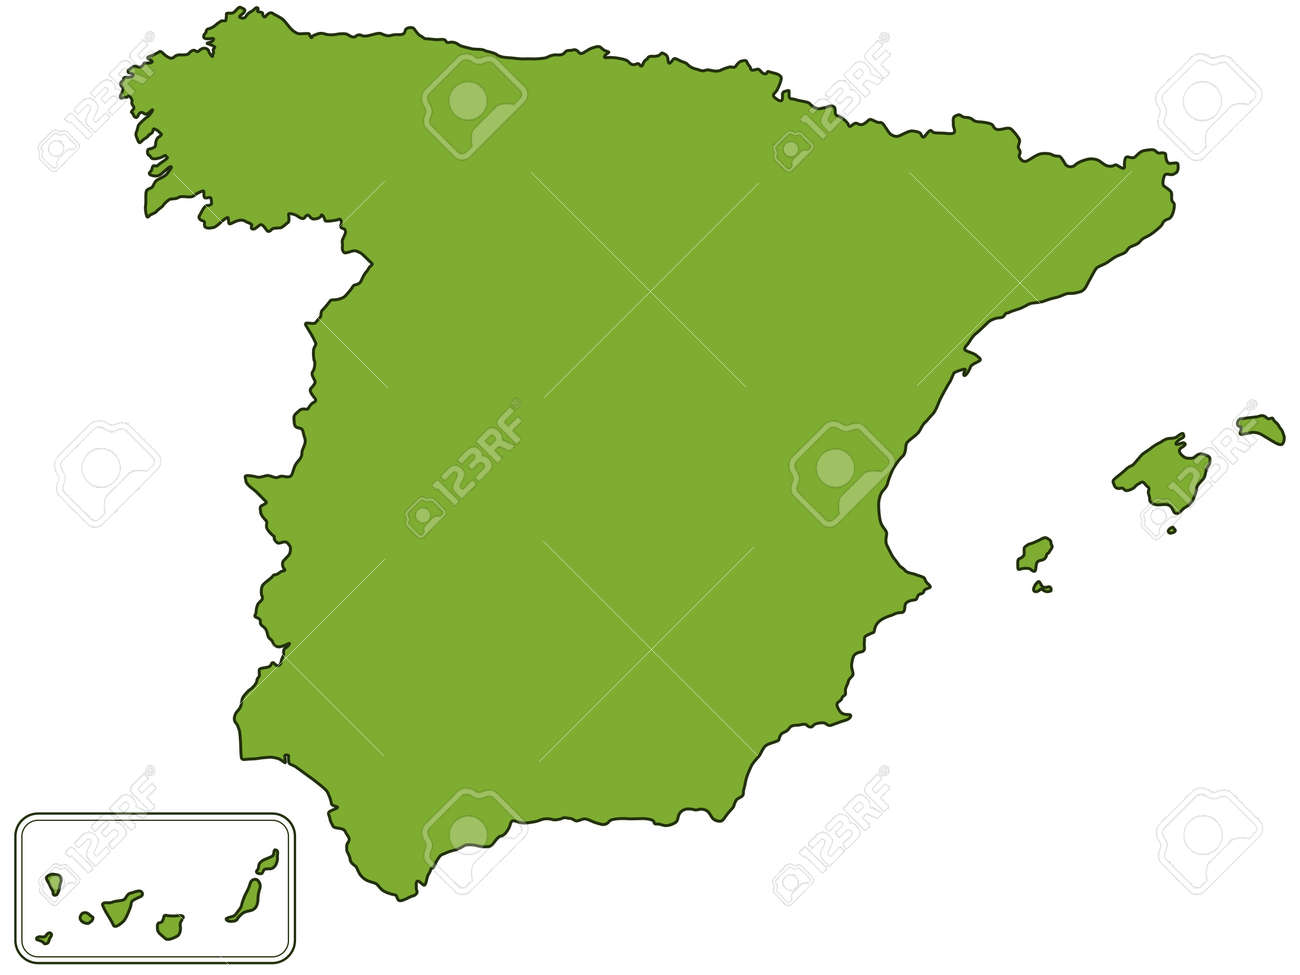 Elevation Map Of Spain.Silhouette Contour Map Of The Spain All Objects Are Independent